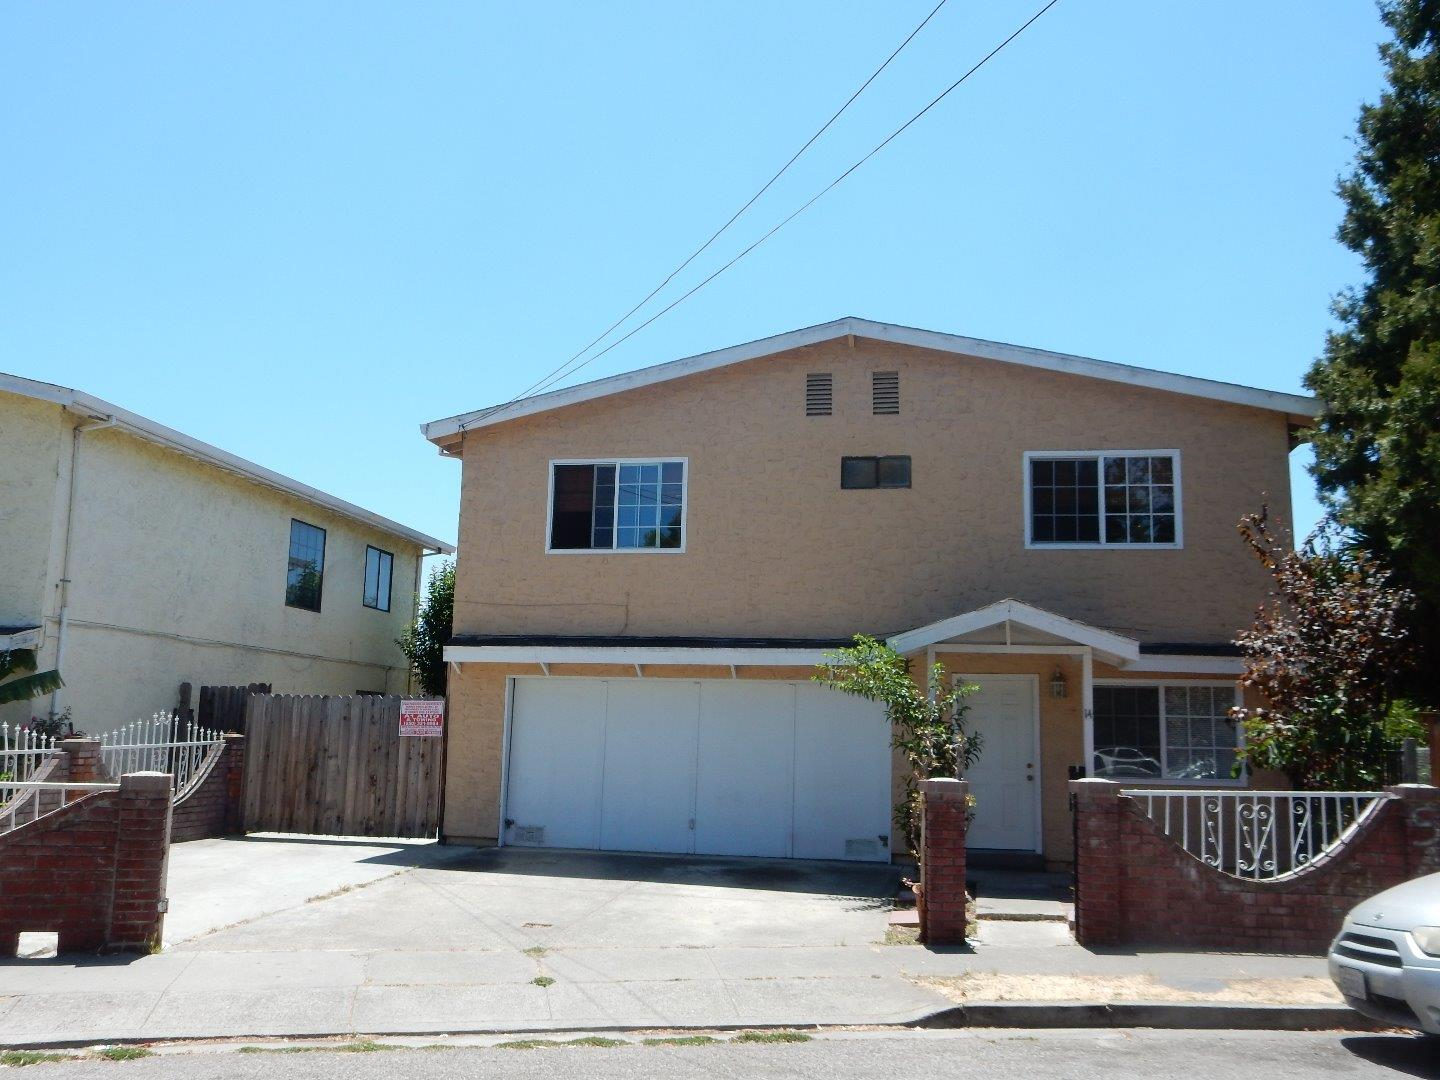 Single Family Home for Sale at 14 Buchanan Court East Palo Alto, California 94303 United States